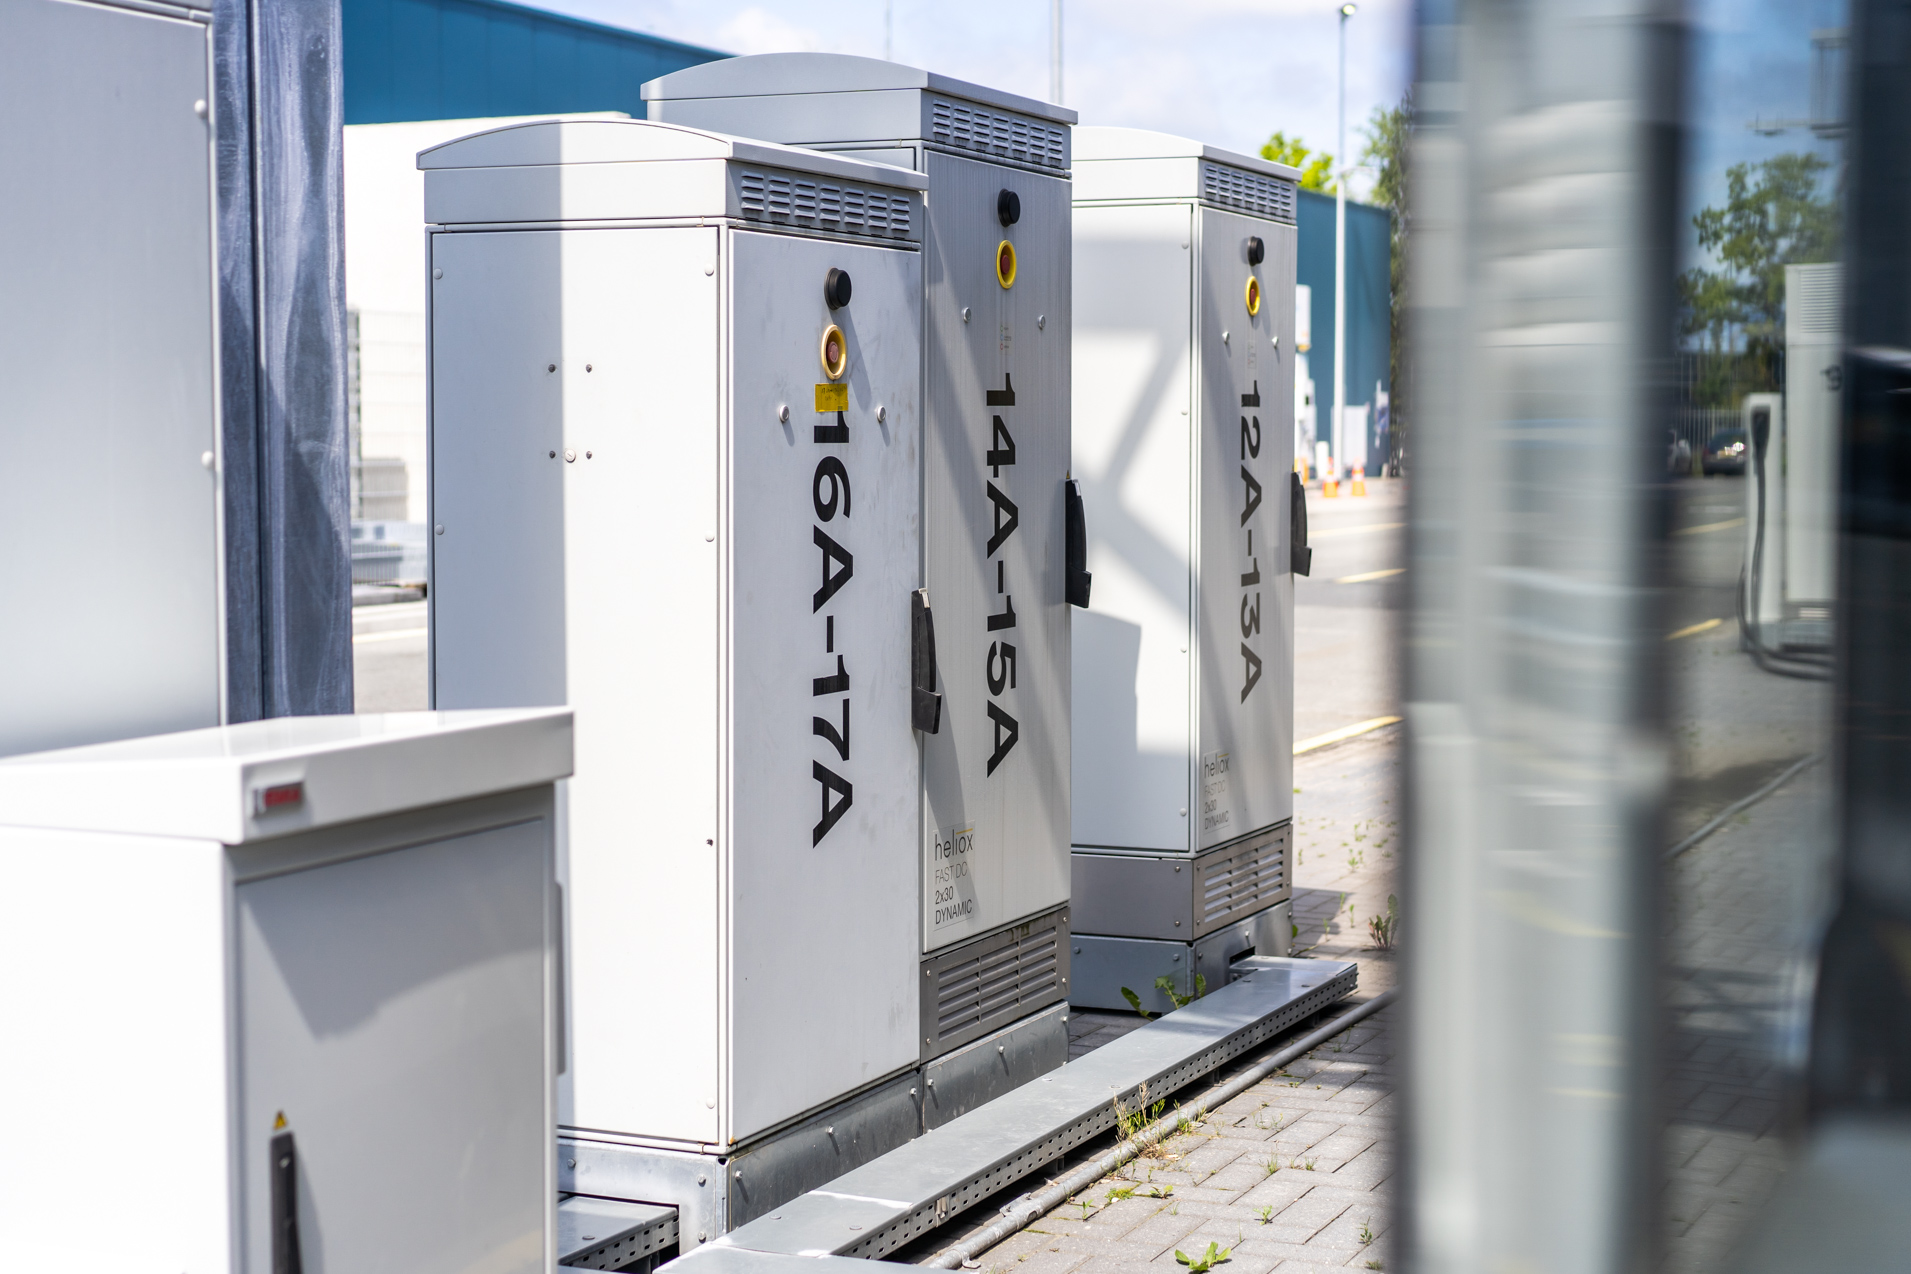 Heliox implements charging infrastructure with DC outlet at Darmstadt